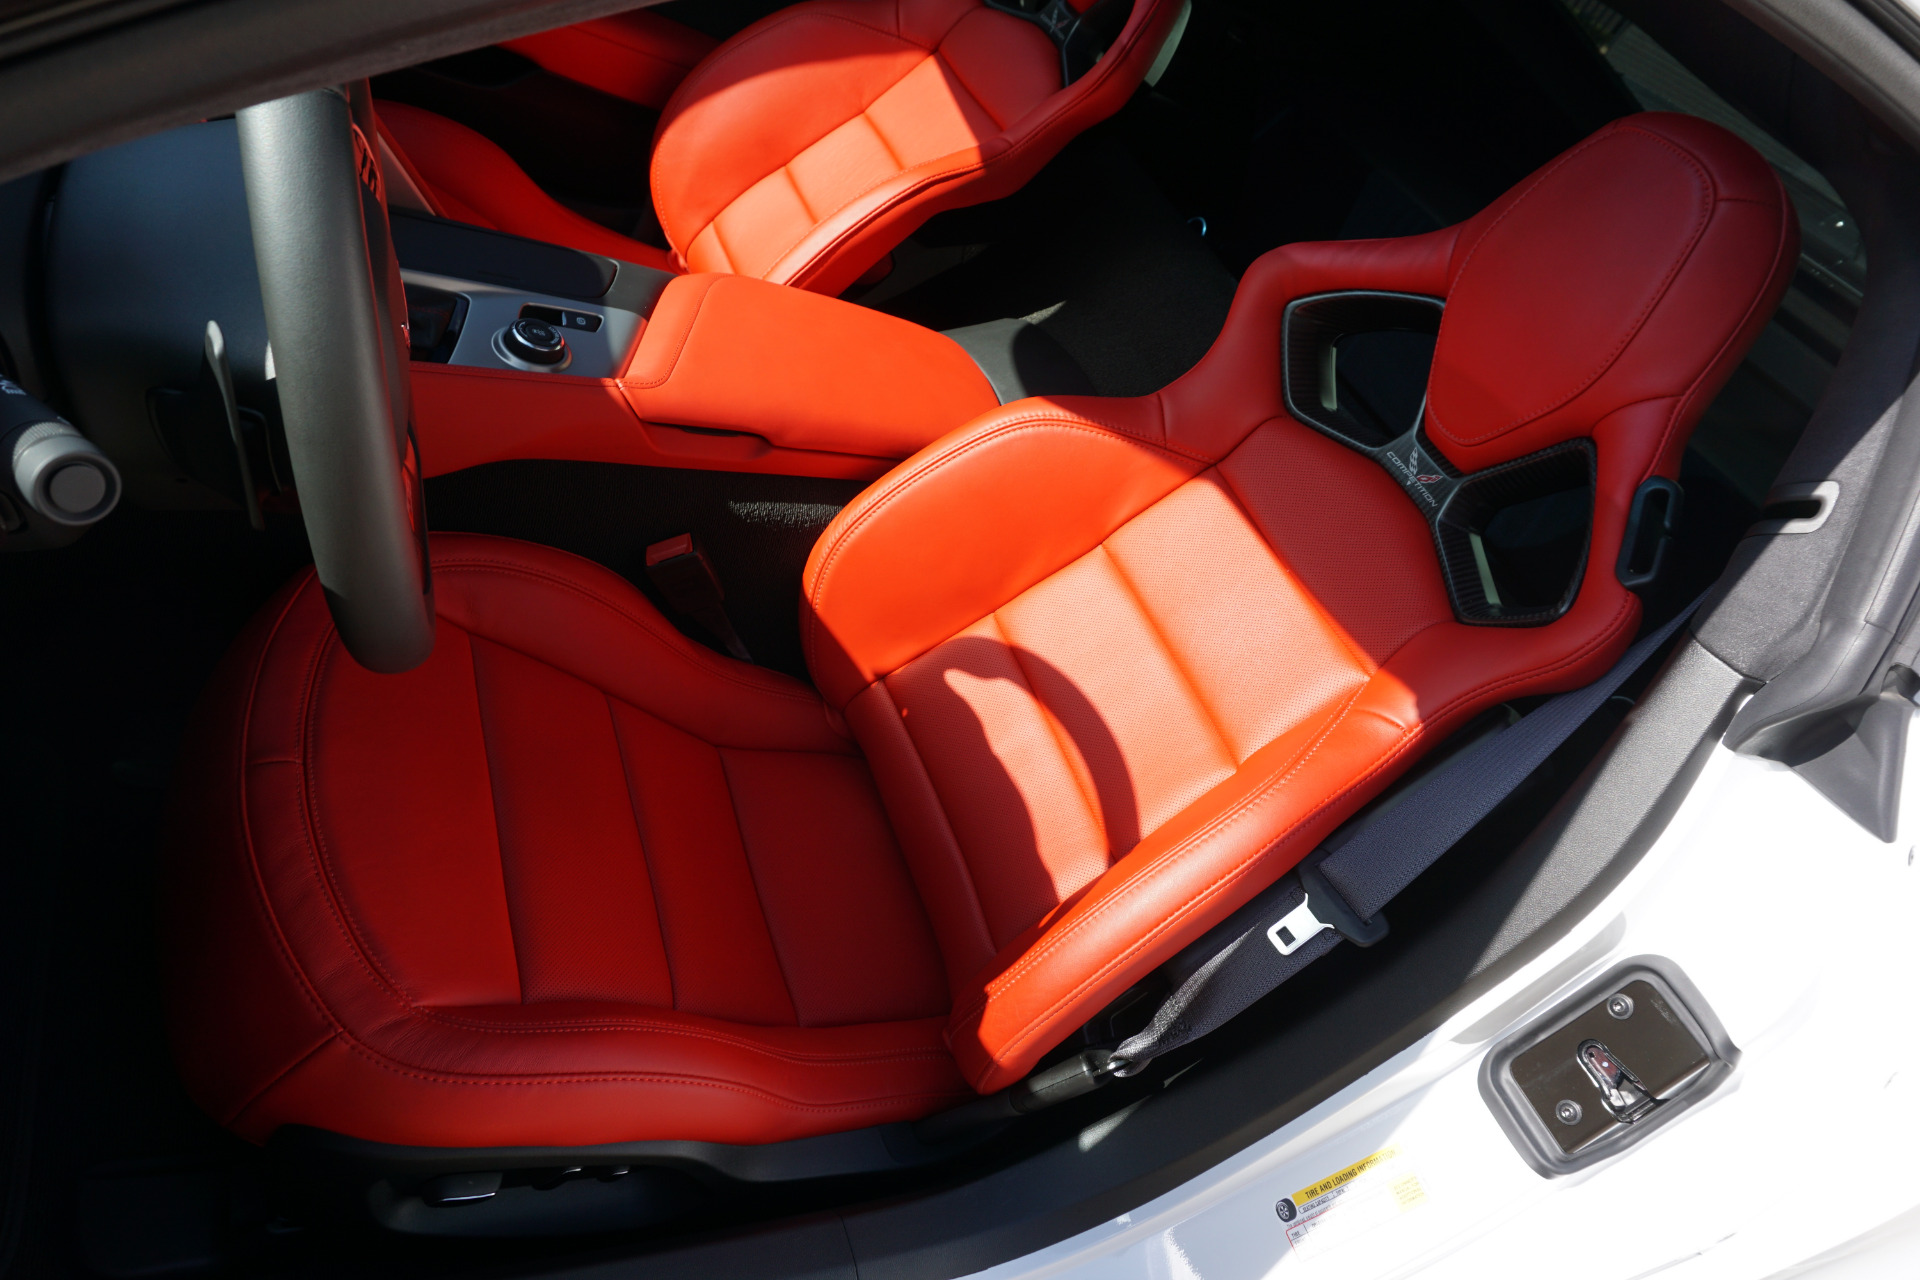 Astounding Used 2015 Chevrolet Corvette Z06 For Sale 69 900 Ocoug Best Dining Table And Chair Ideas Images Ocougorg